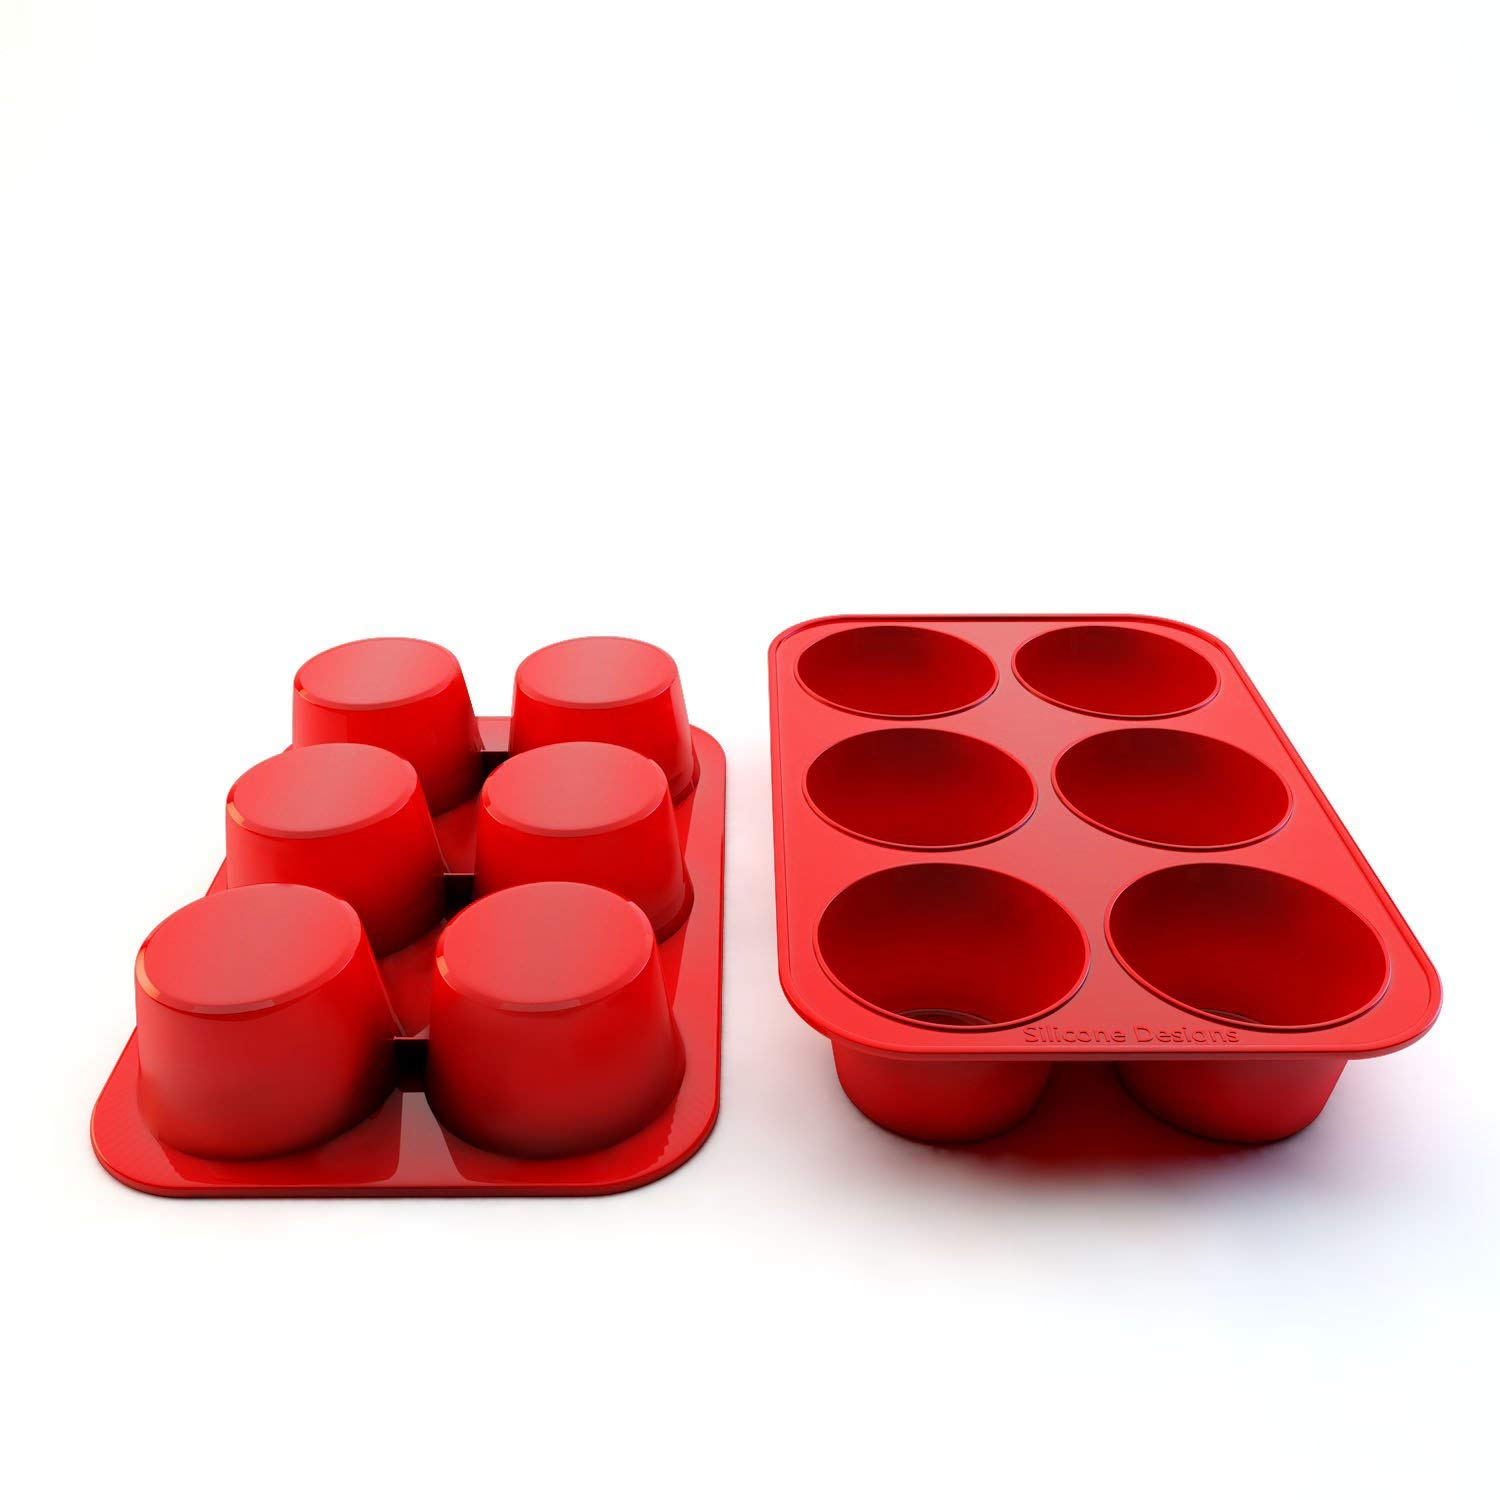 Silicone Texas Muffin Pans and Thanksgiving Cupcake Maker (3, 6 Cup) by Silicone Designs (Image #2)